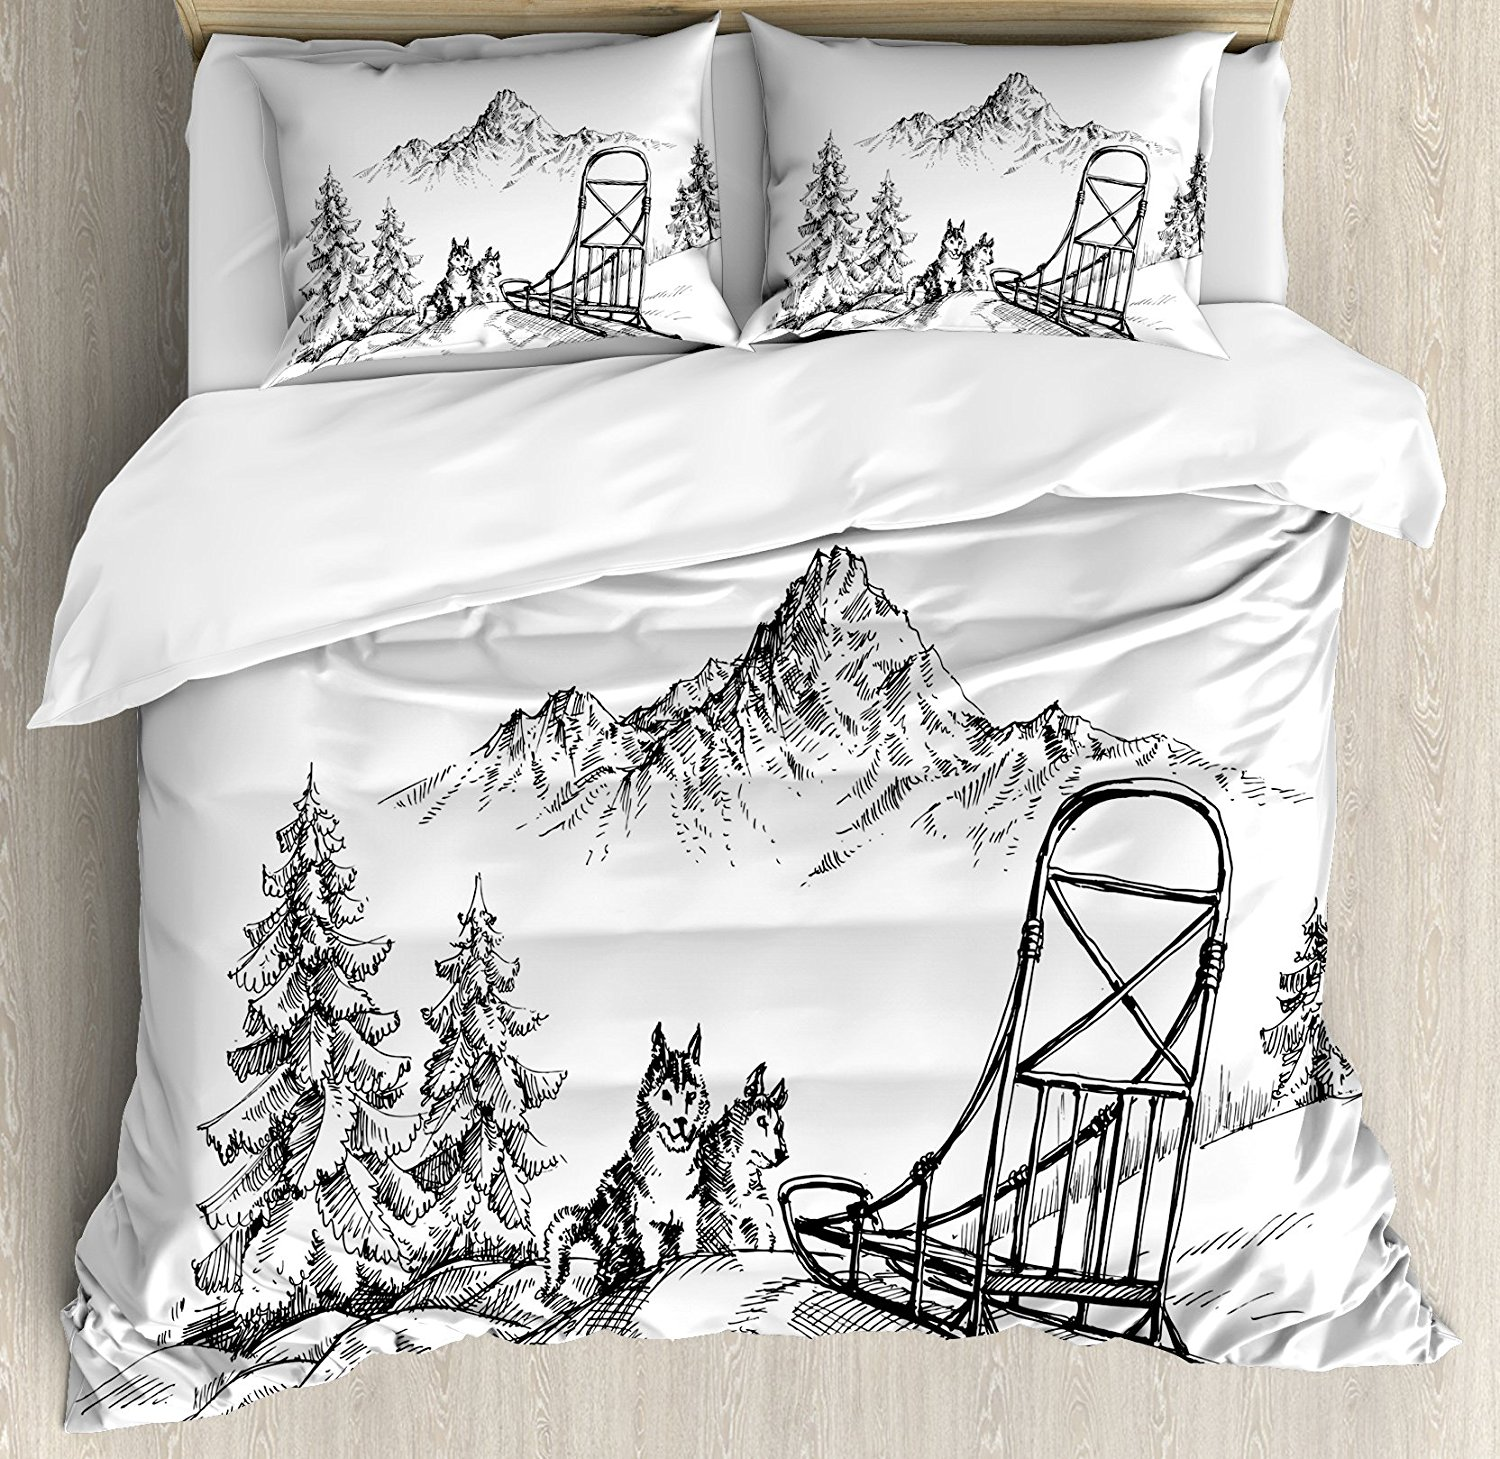 Alaskan Malamute Duvet Cover Set Mountain Landscape in Winter Sledding Dogs Pine Trees Wilderness Art Bedding